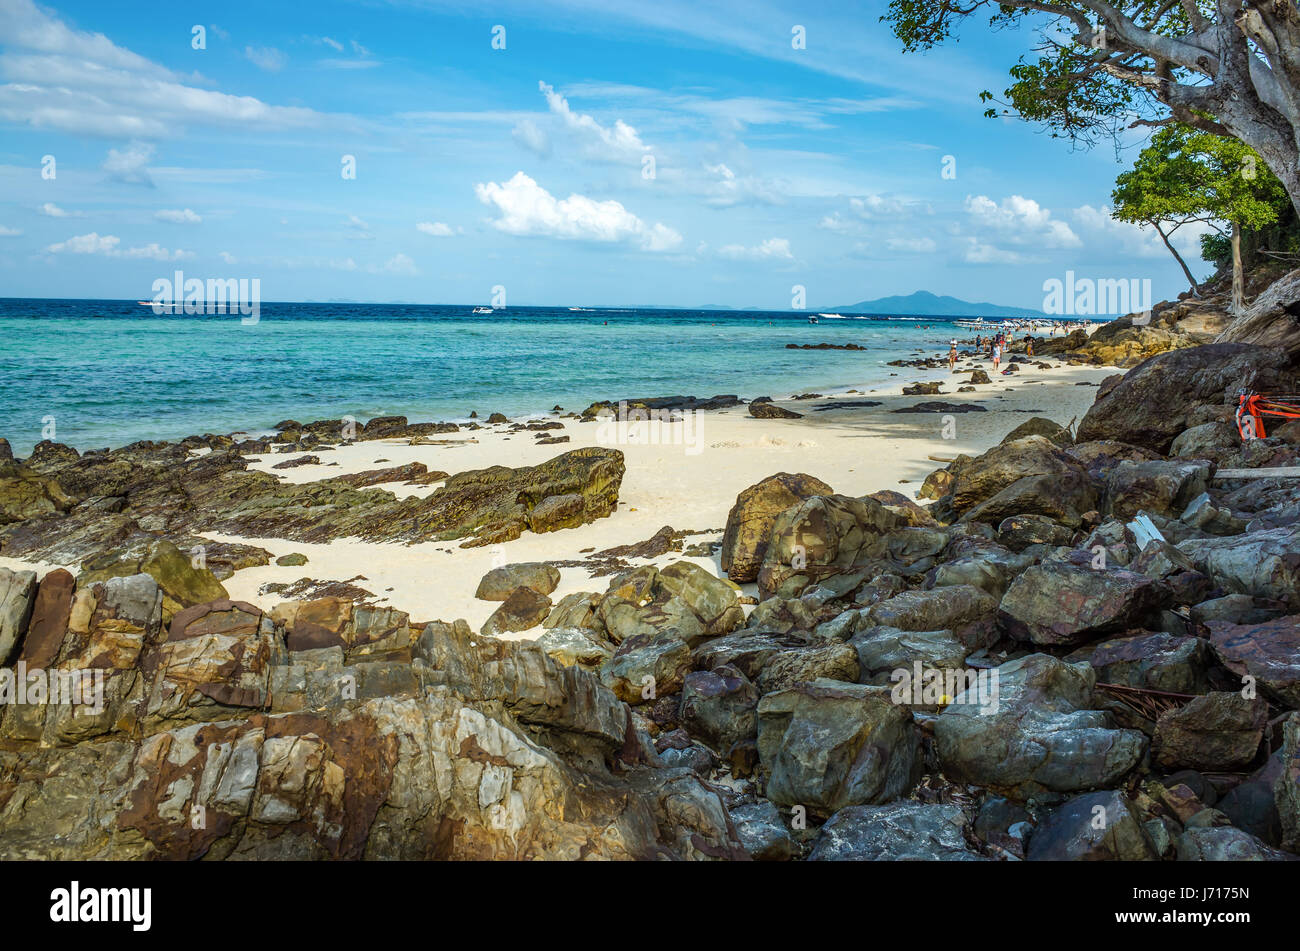 Beach of the Andaman sea in Phuket, Thailand - Stock Image